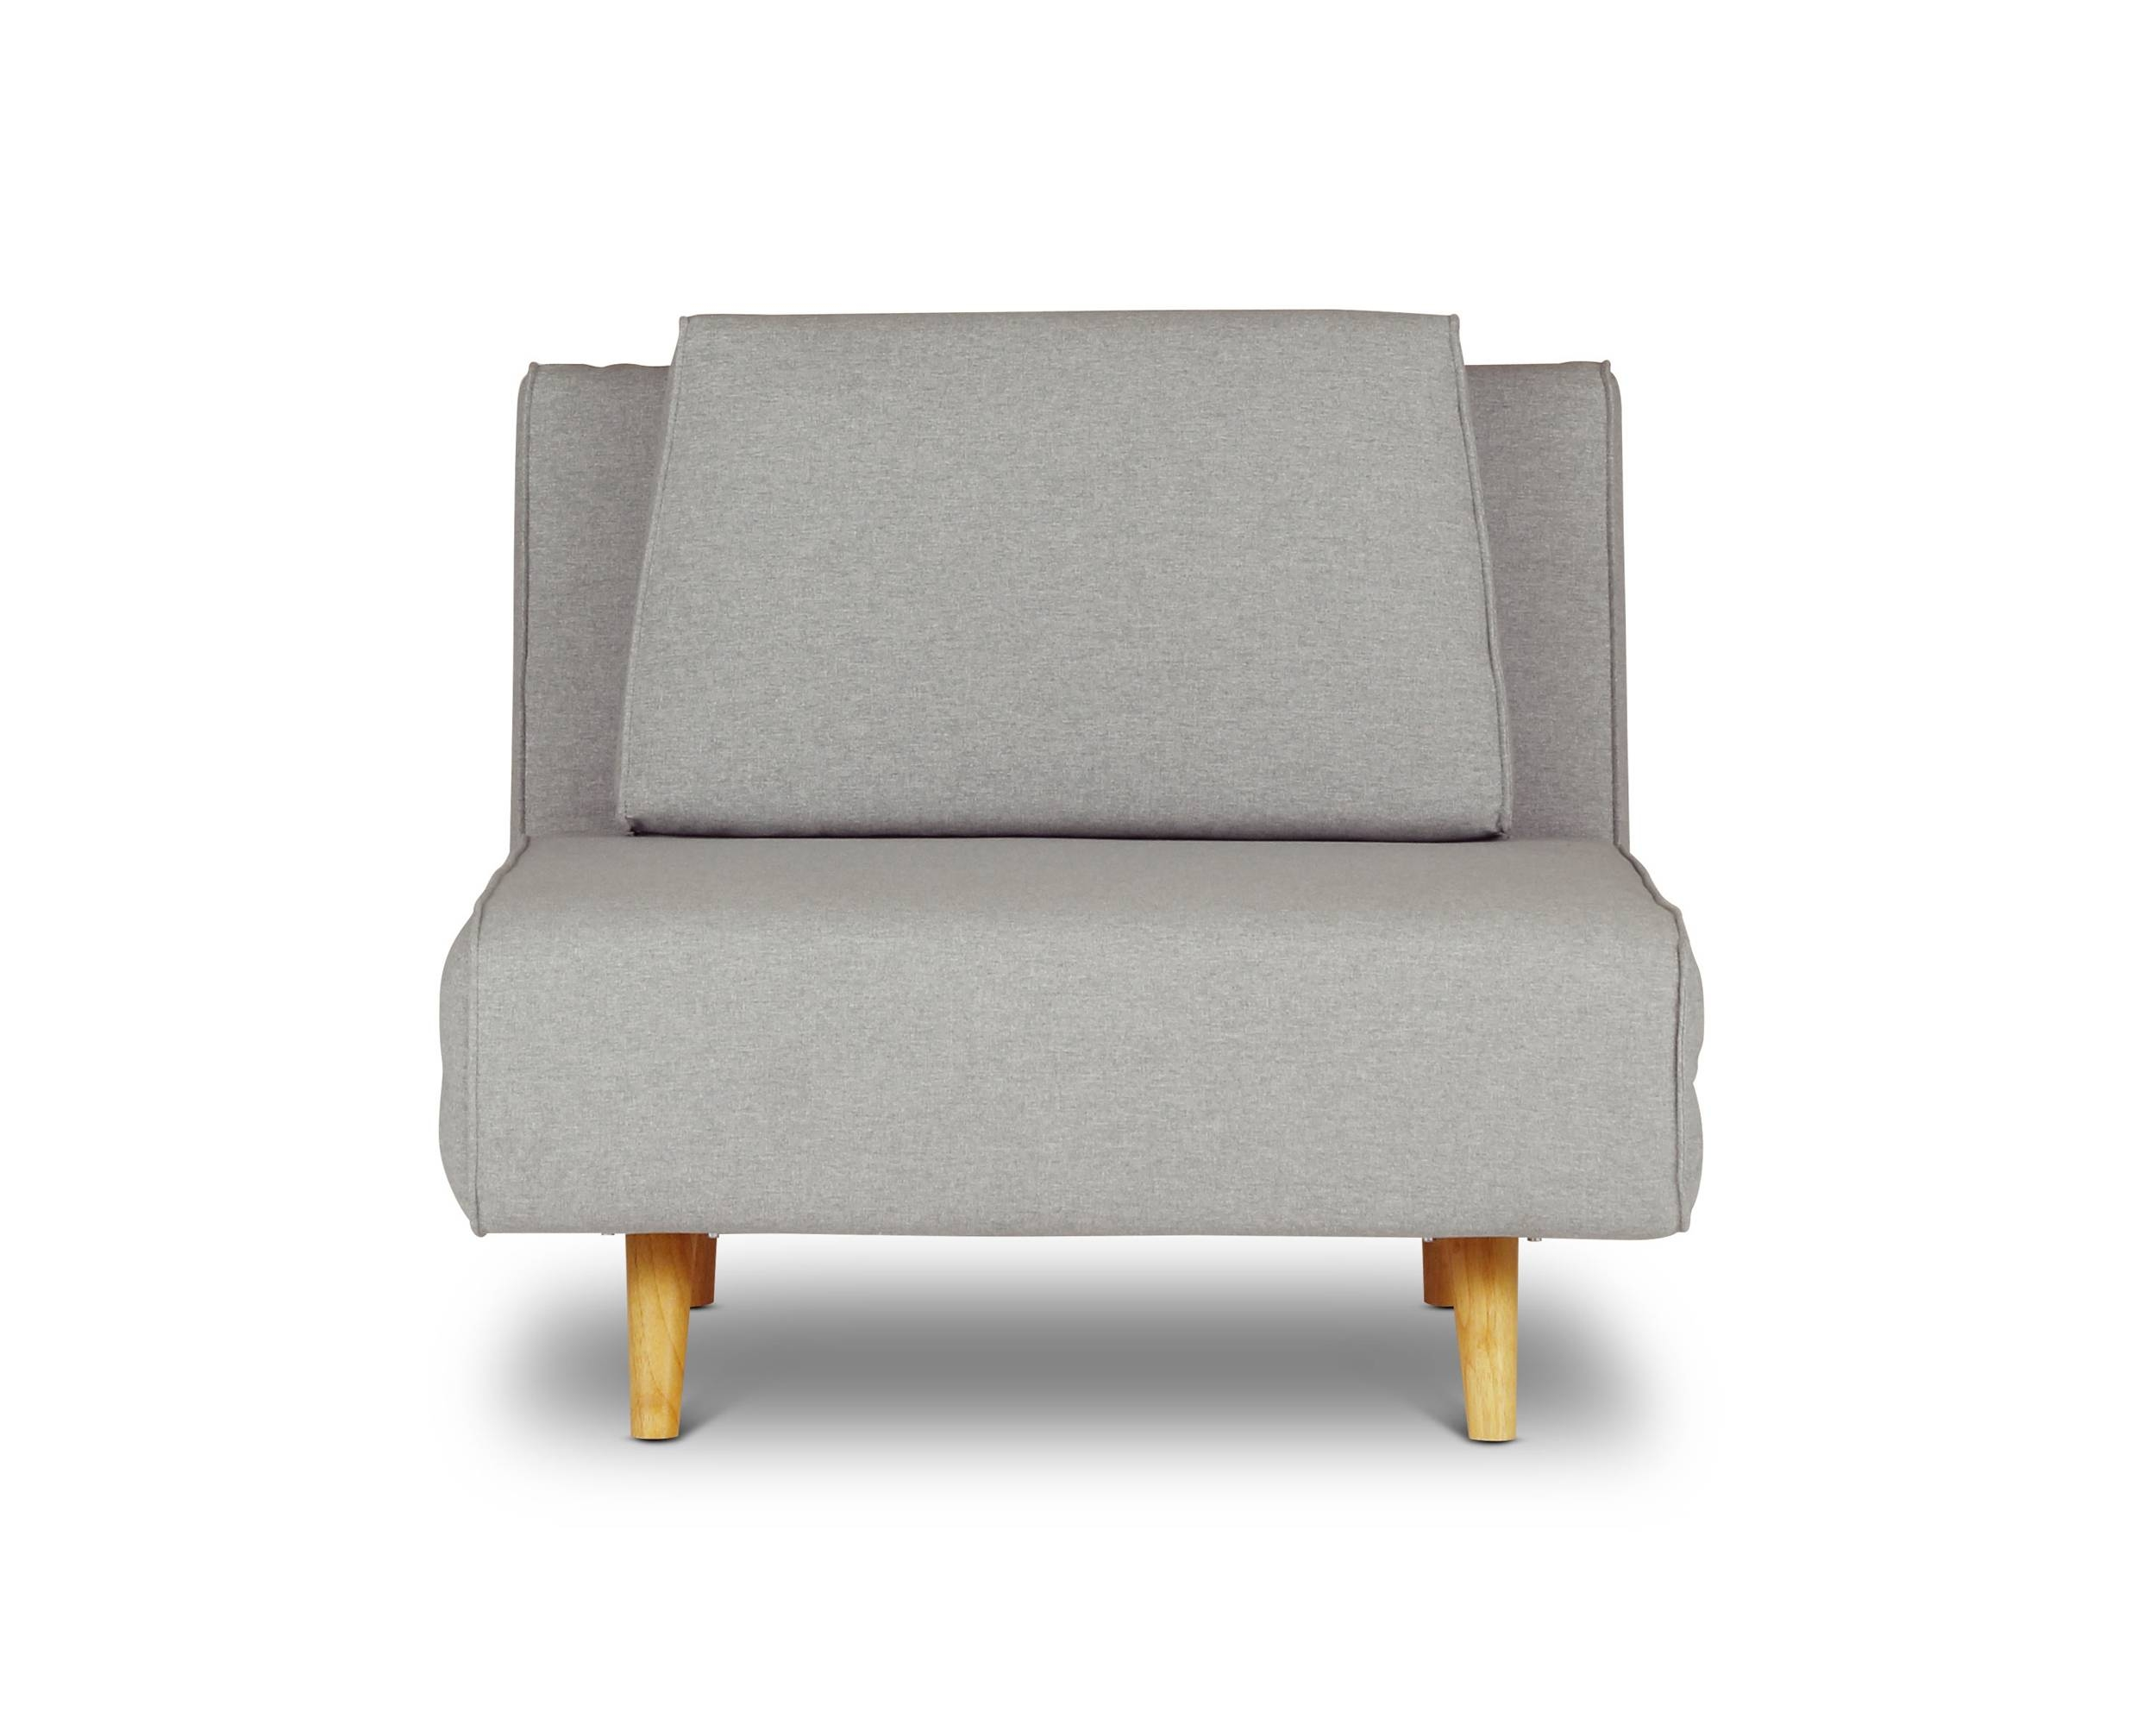 Sofas Center : Sofagle Sofabed Chair Ebay Armchair Metal throughout Single Chair Sofa Bed (Image 27 of 30)